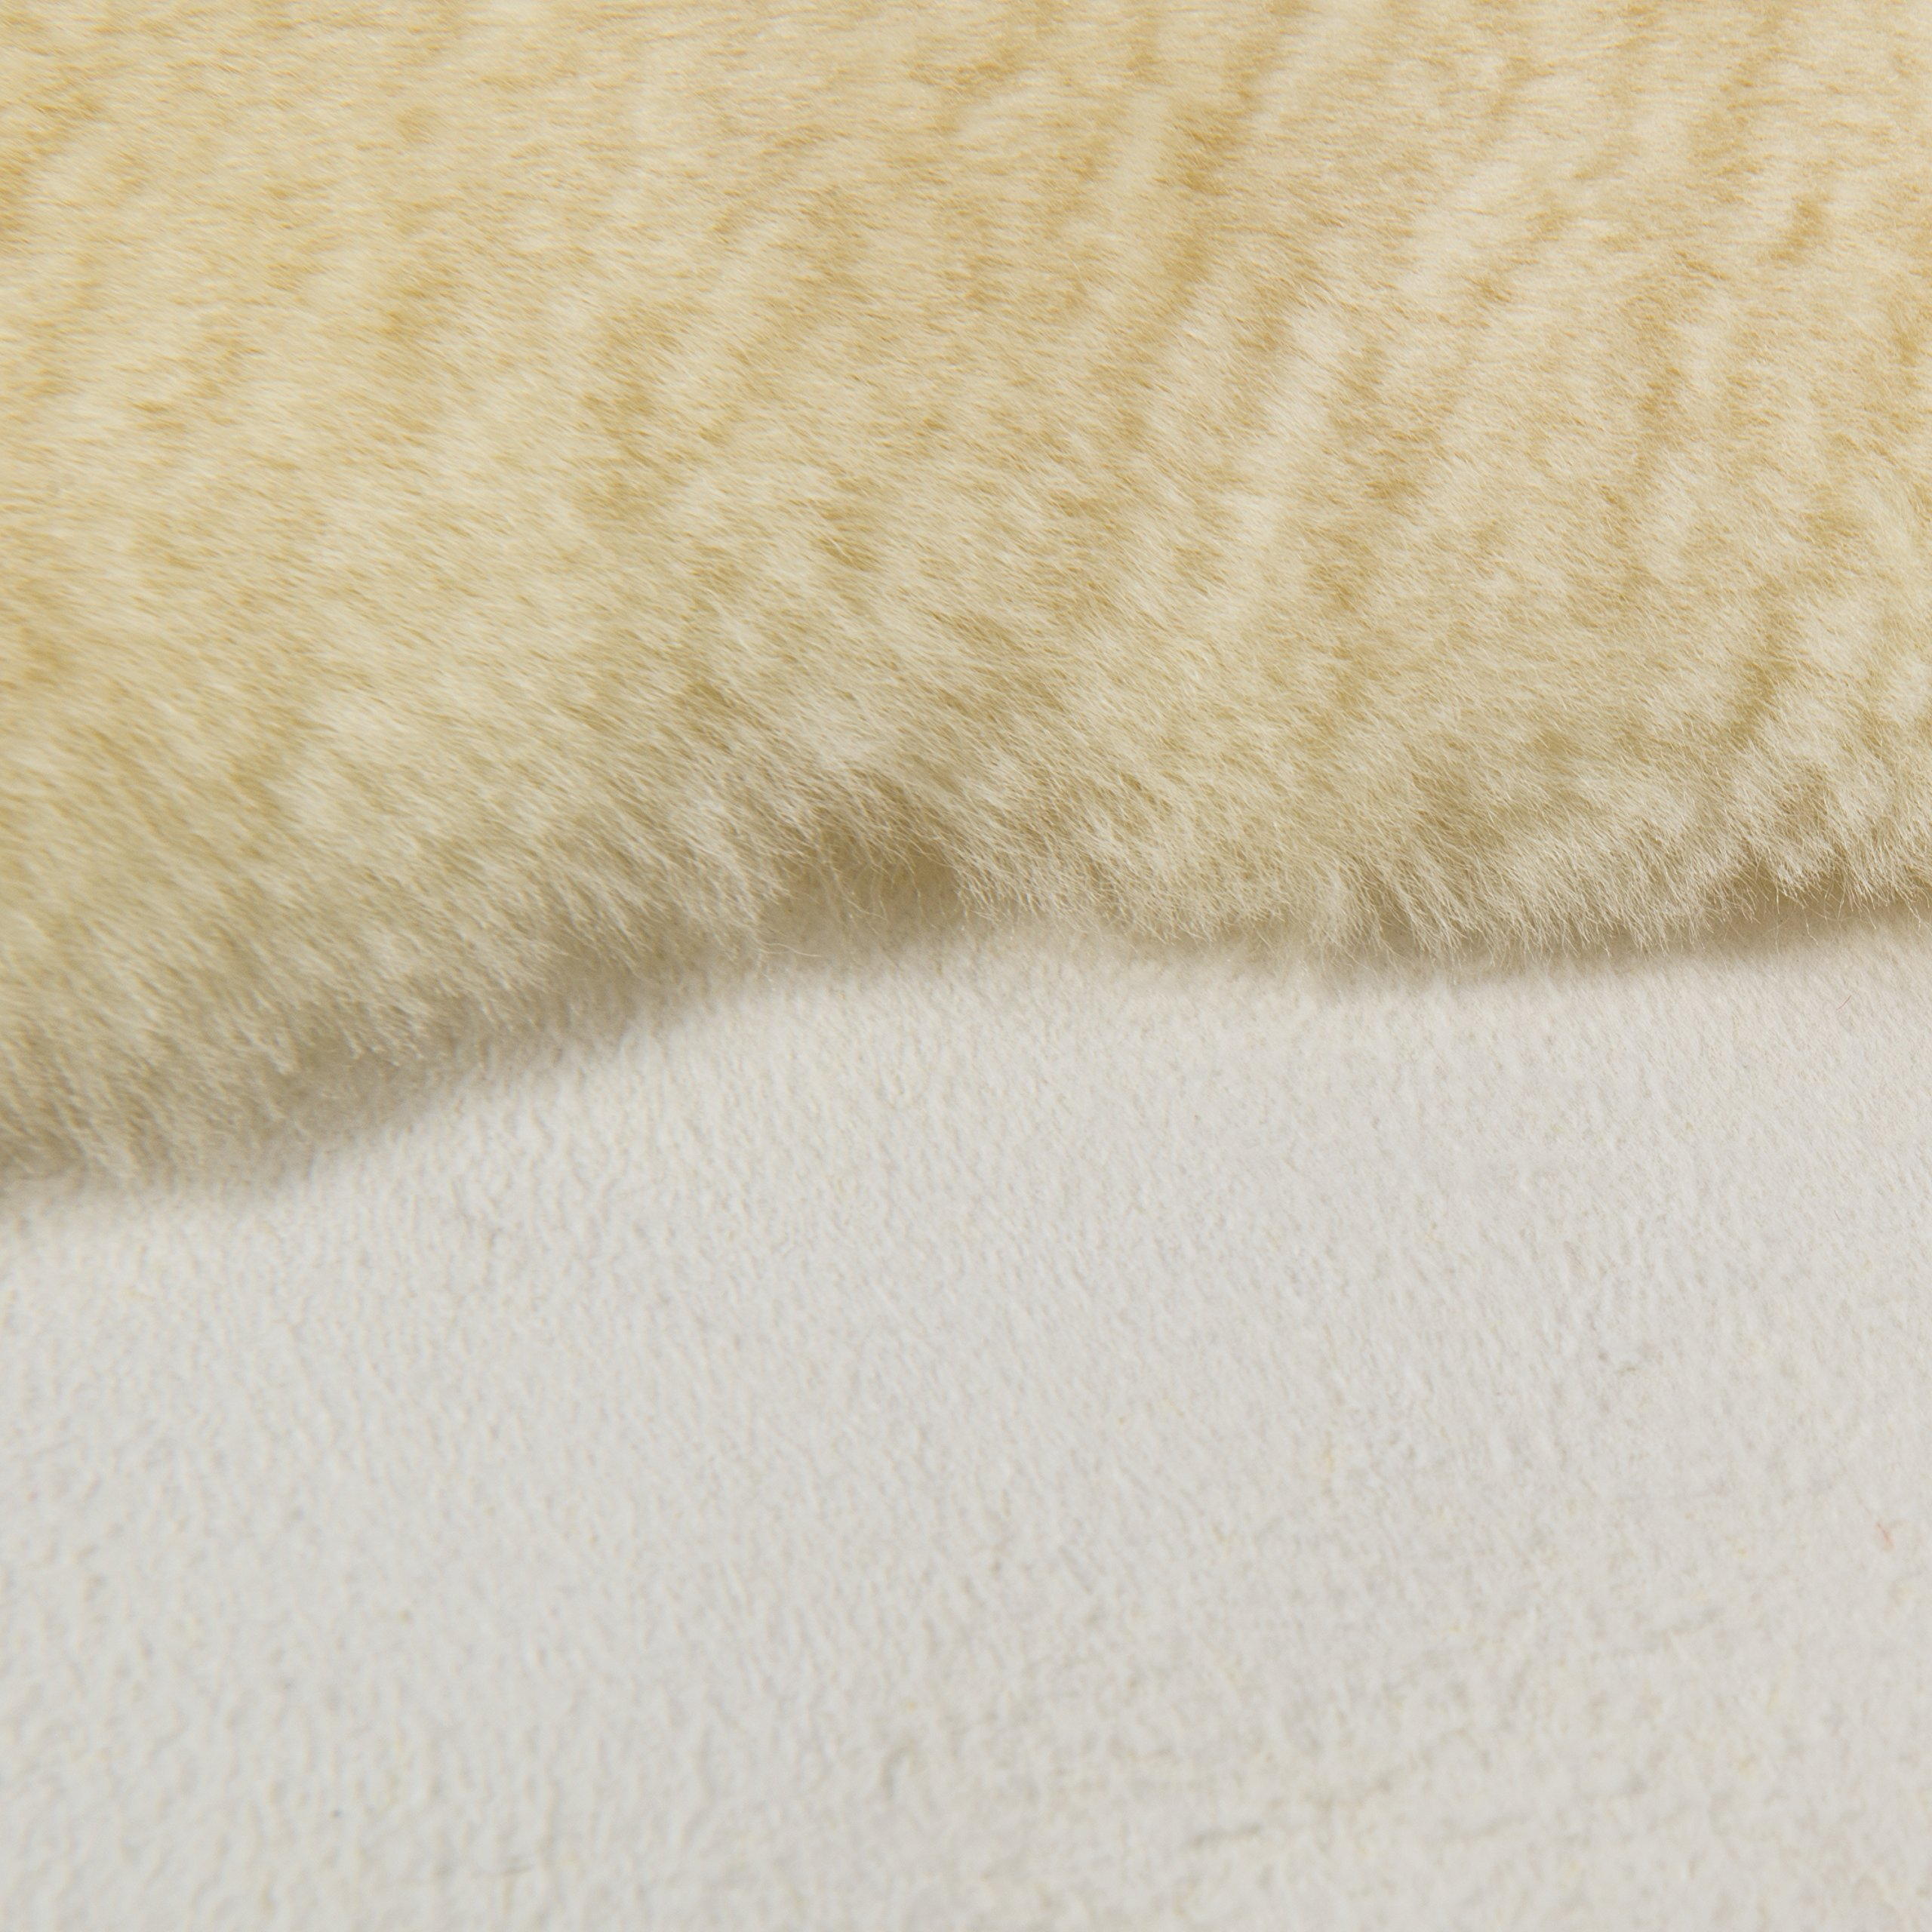 DMI Natural Sheepskin Wool Comfort Mattress Bed Pad Bed Mat, Washable, 8 to 9 Square Feet, Beige by Briggs (Image #4)